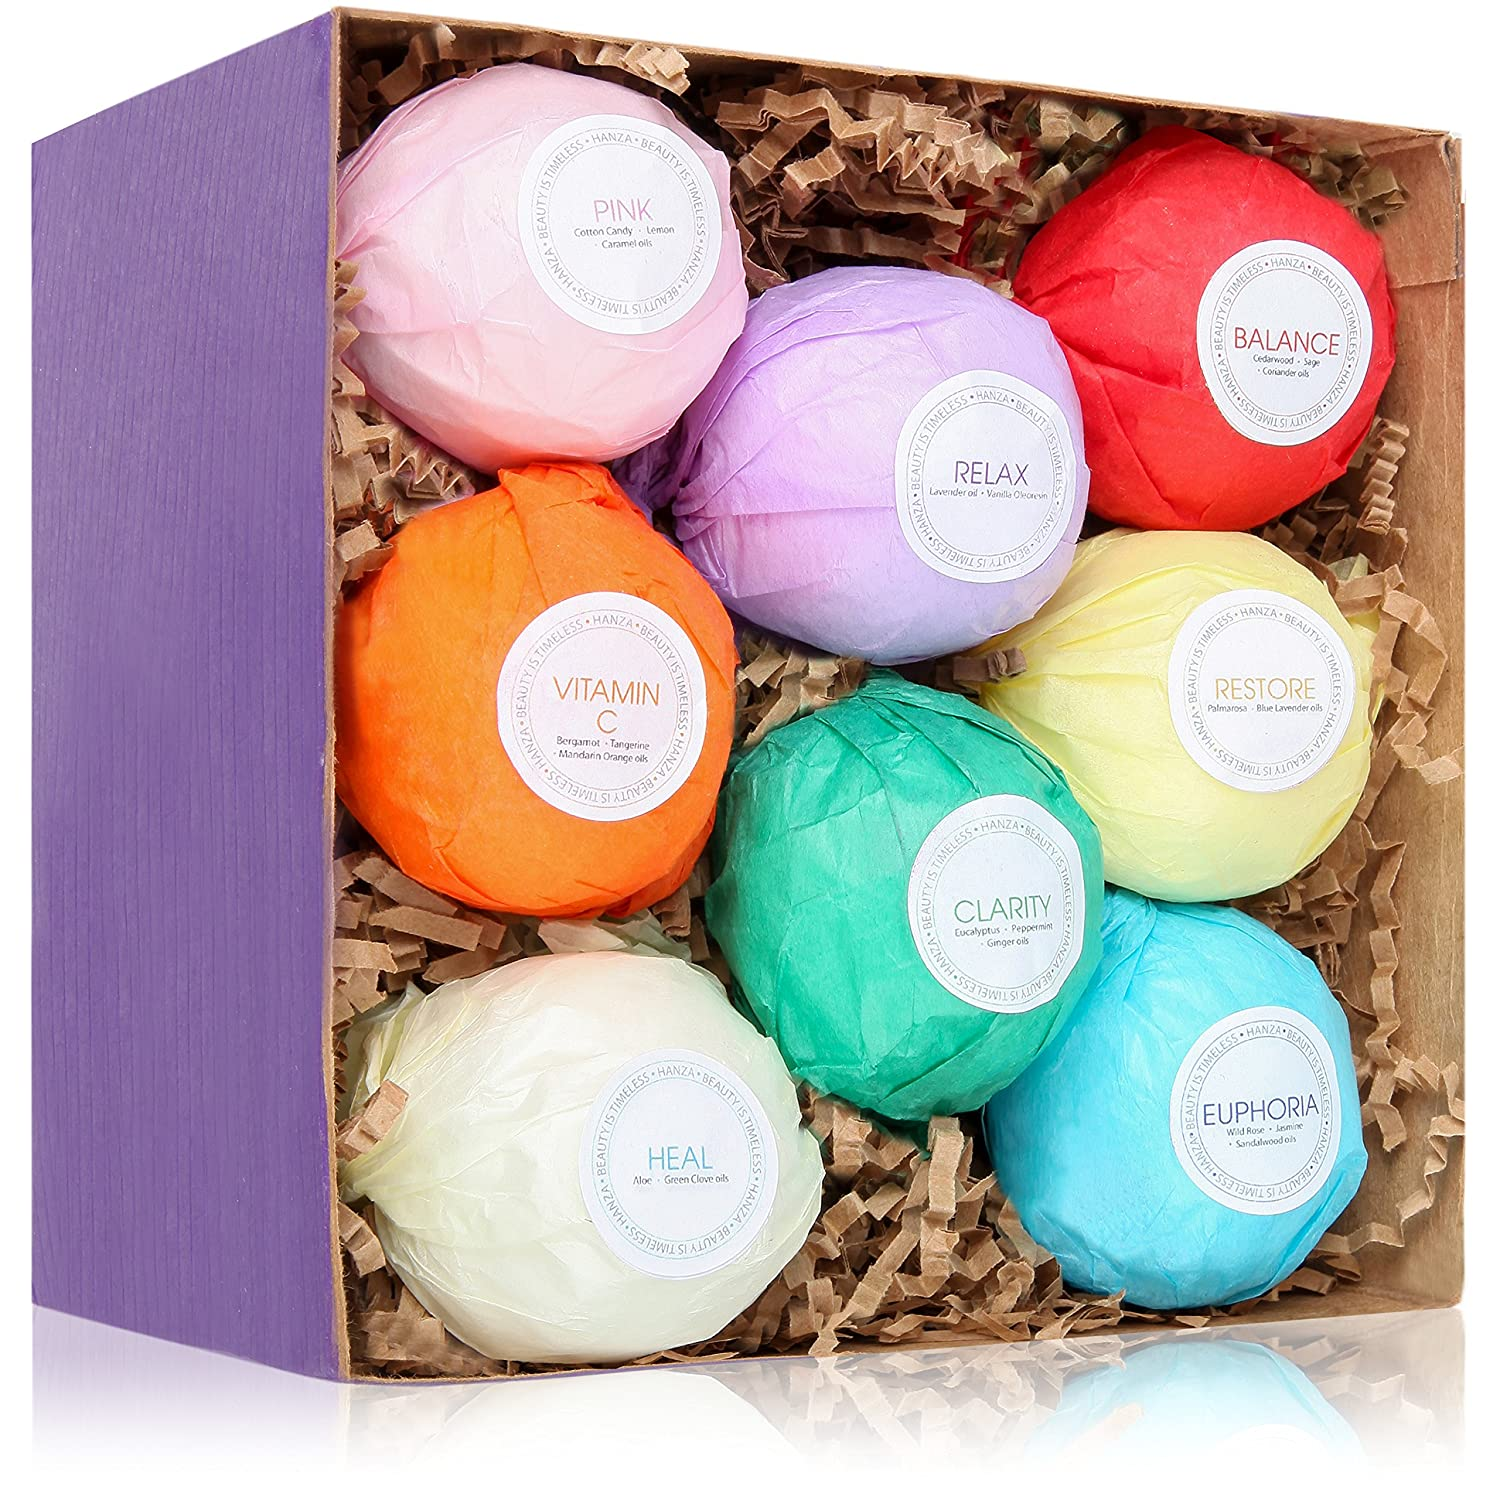 8 Ultra Lush Bath Bomb Gift Set - Bath Bombs Kit - USA Made - Spa Fizzies - Best Gift Ideas - Enjoyable than Bath Beads & other Bath Body Products - Add to bath bubbles - Relaxation Kit Bath Basket